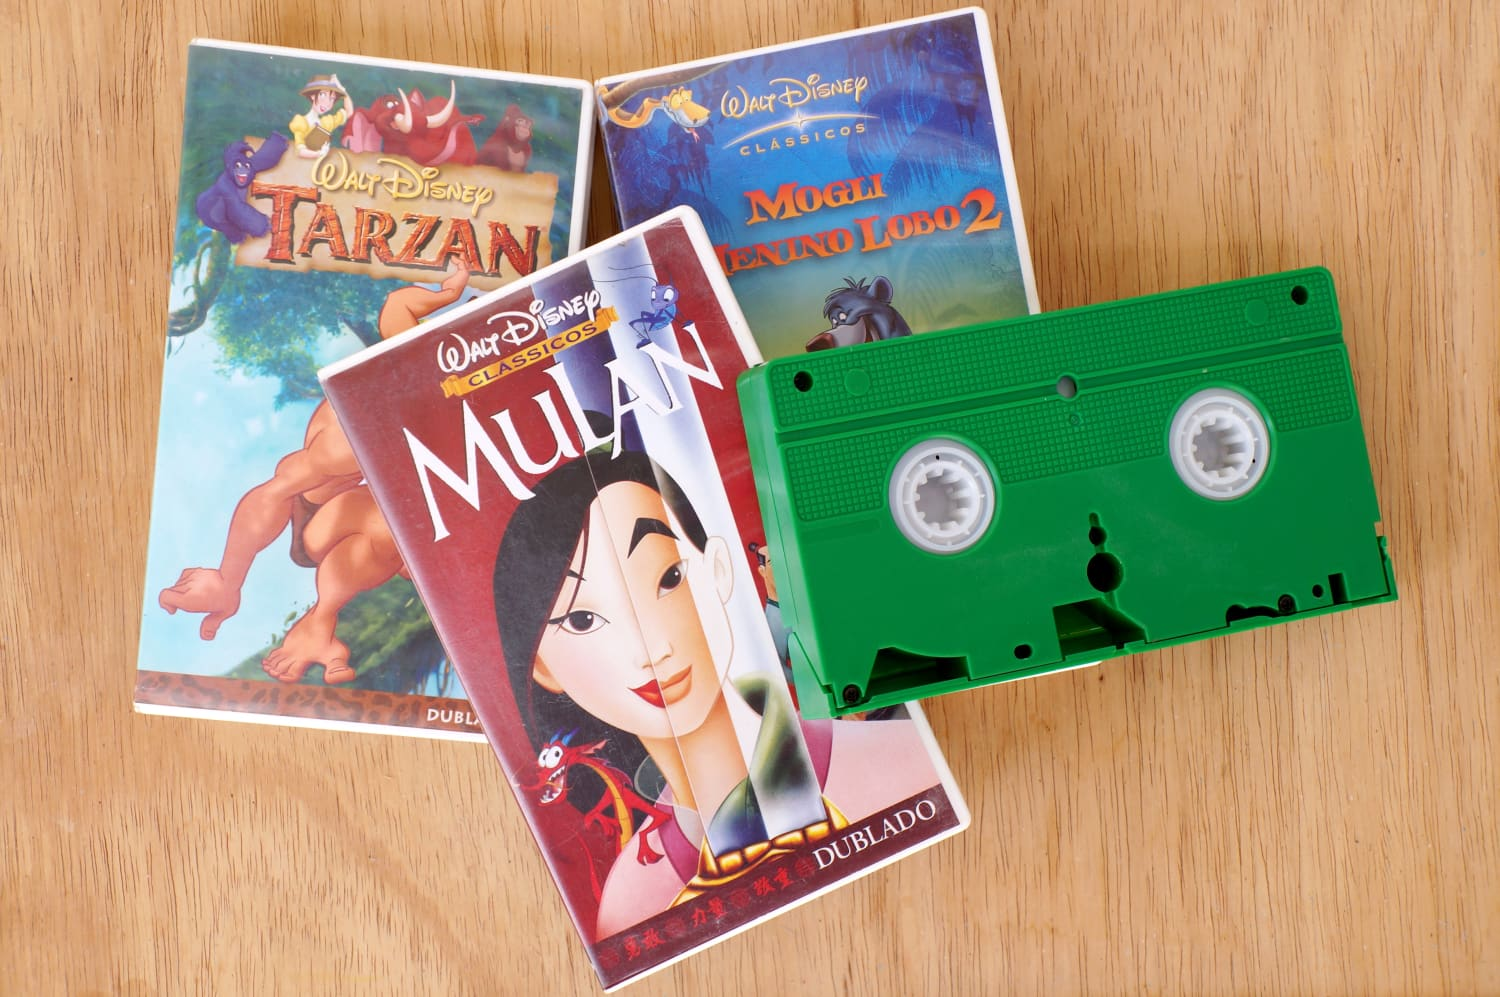 Your Old VHS Tapes Could Be Worth Up To $15K